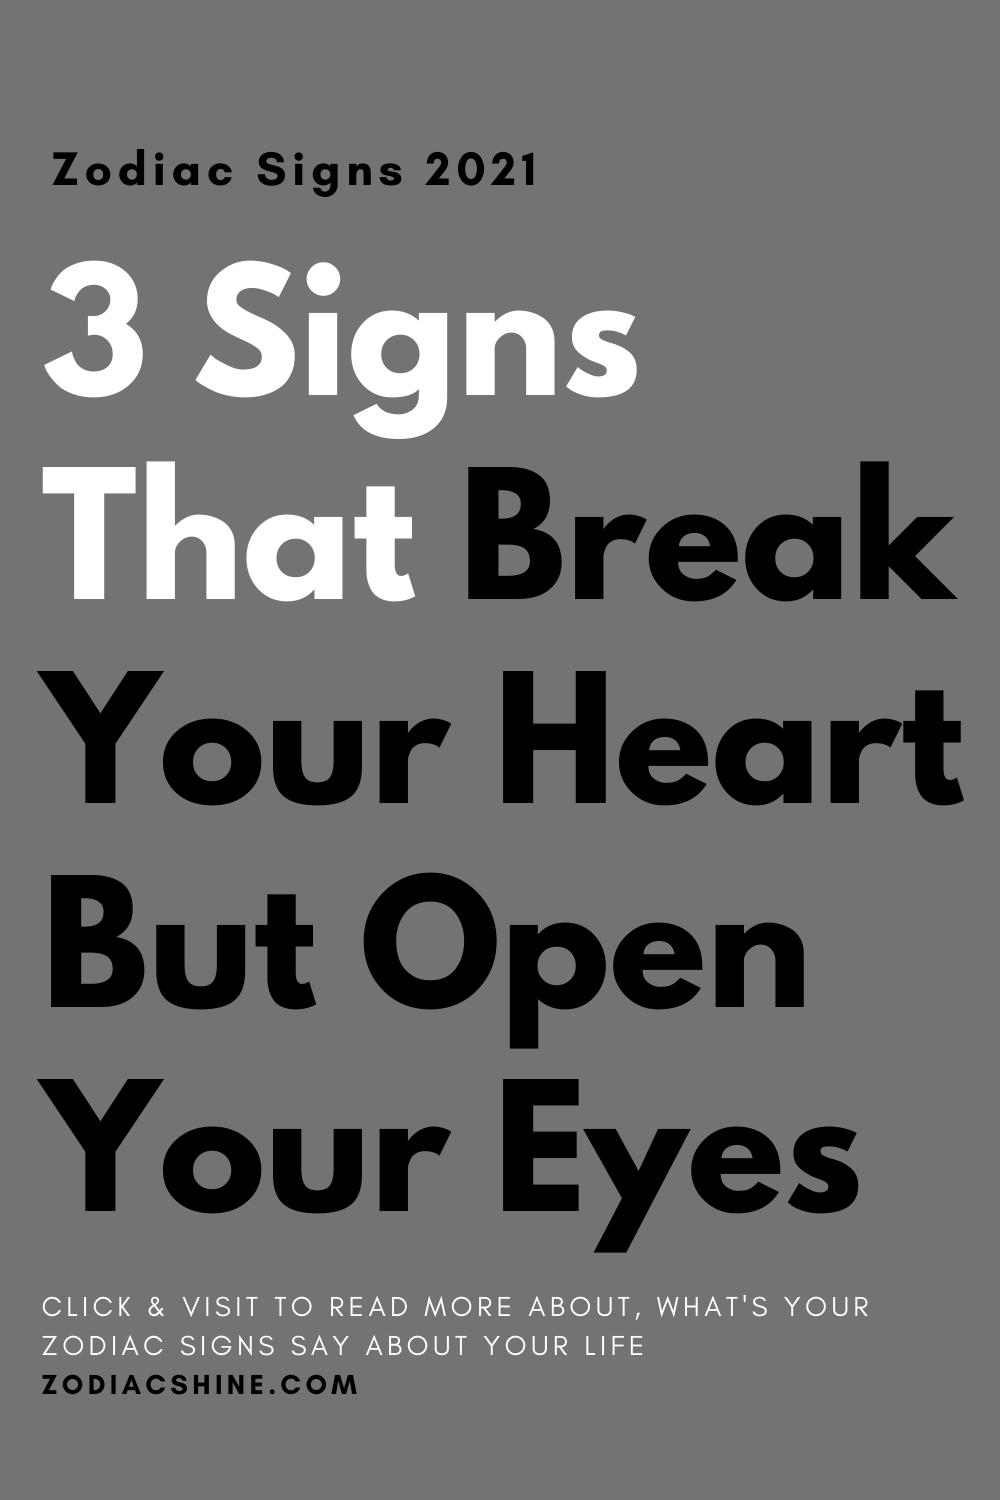 3 Signs That Break Your Heart But Open Your Eyes